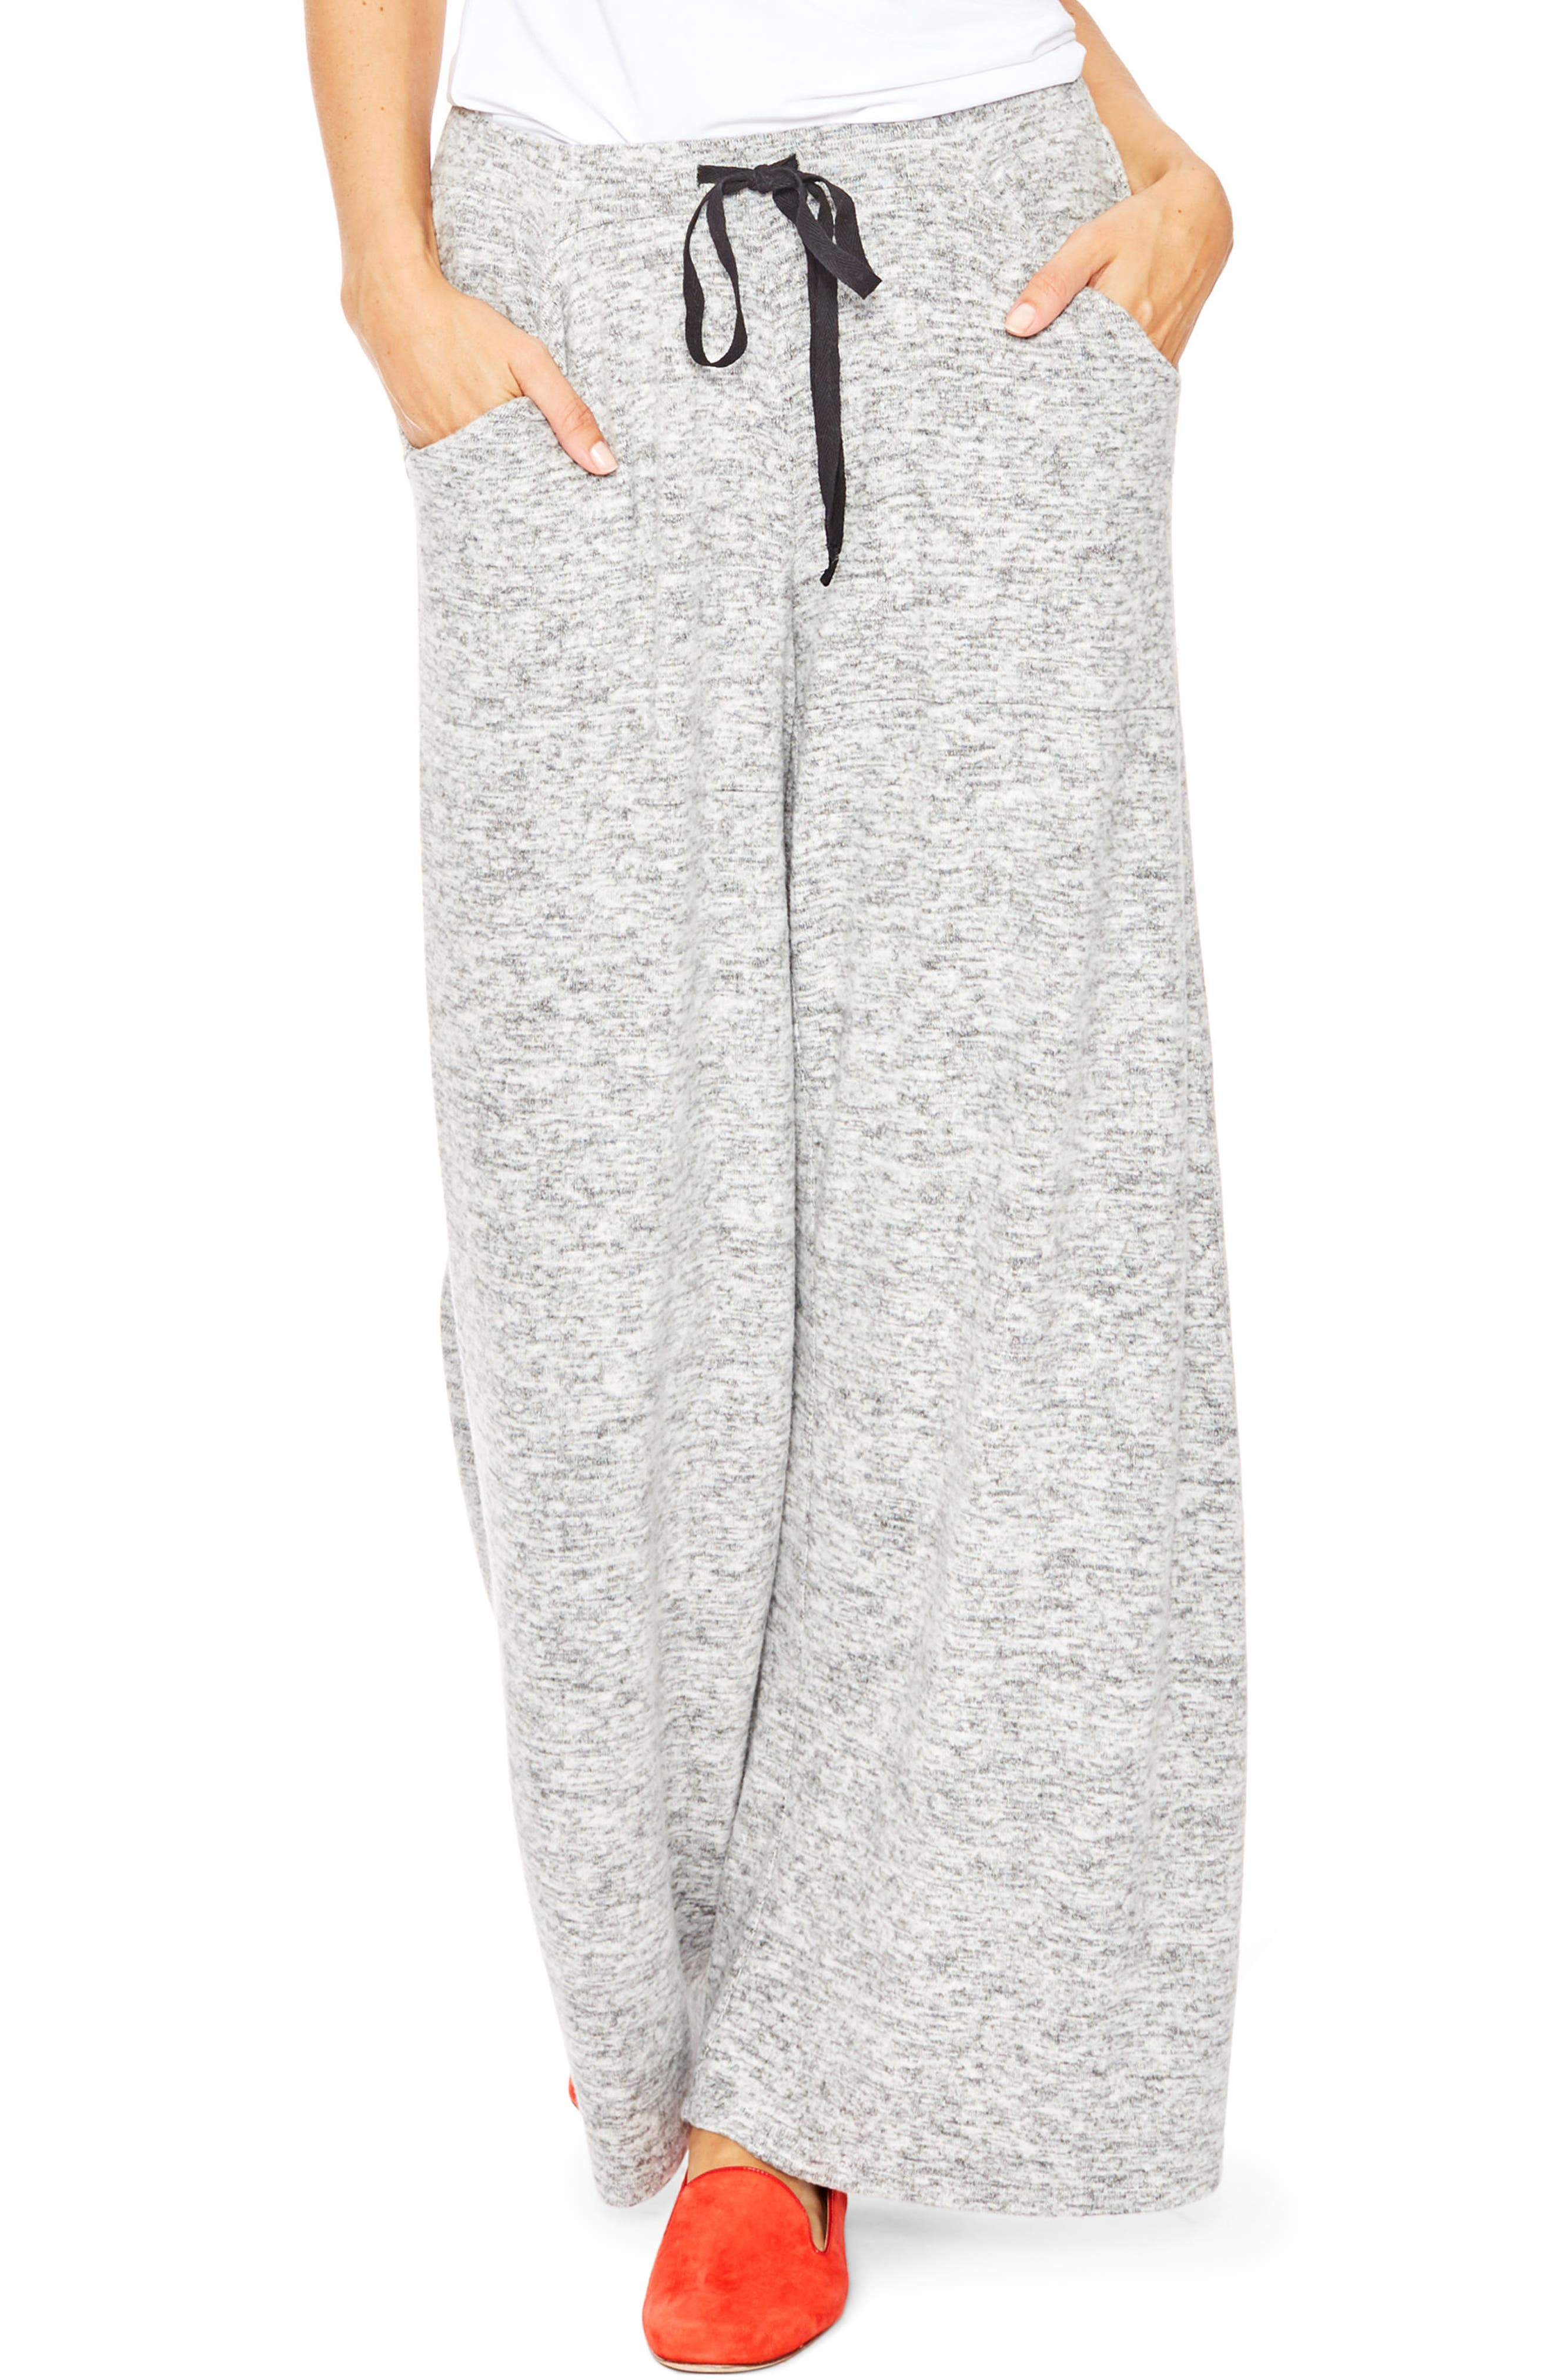 ROSIE POPE RILEY MATERNITY SWEATPANTS